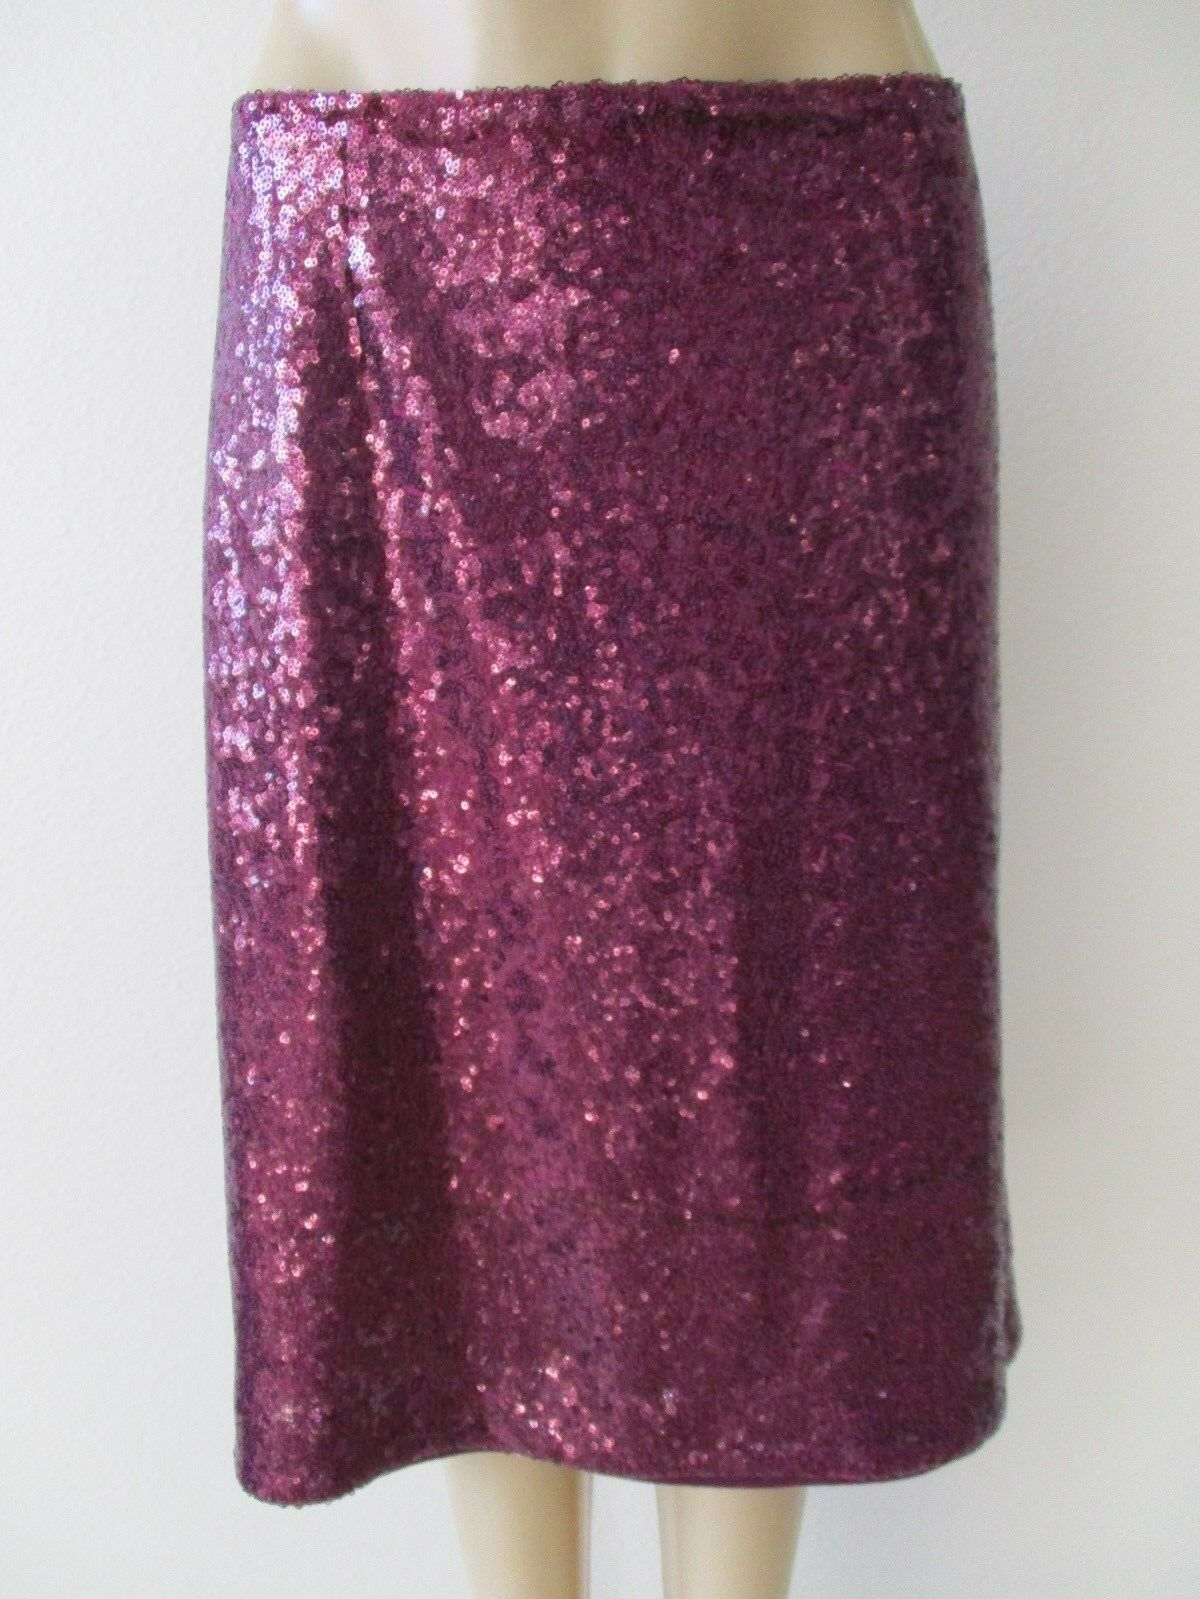 JESSICA LONDON DARK PURPLE SEQUIN EMBELLISHED SKIRT SIZE 22 - NEW